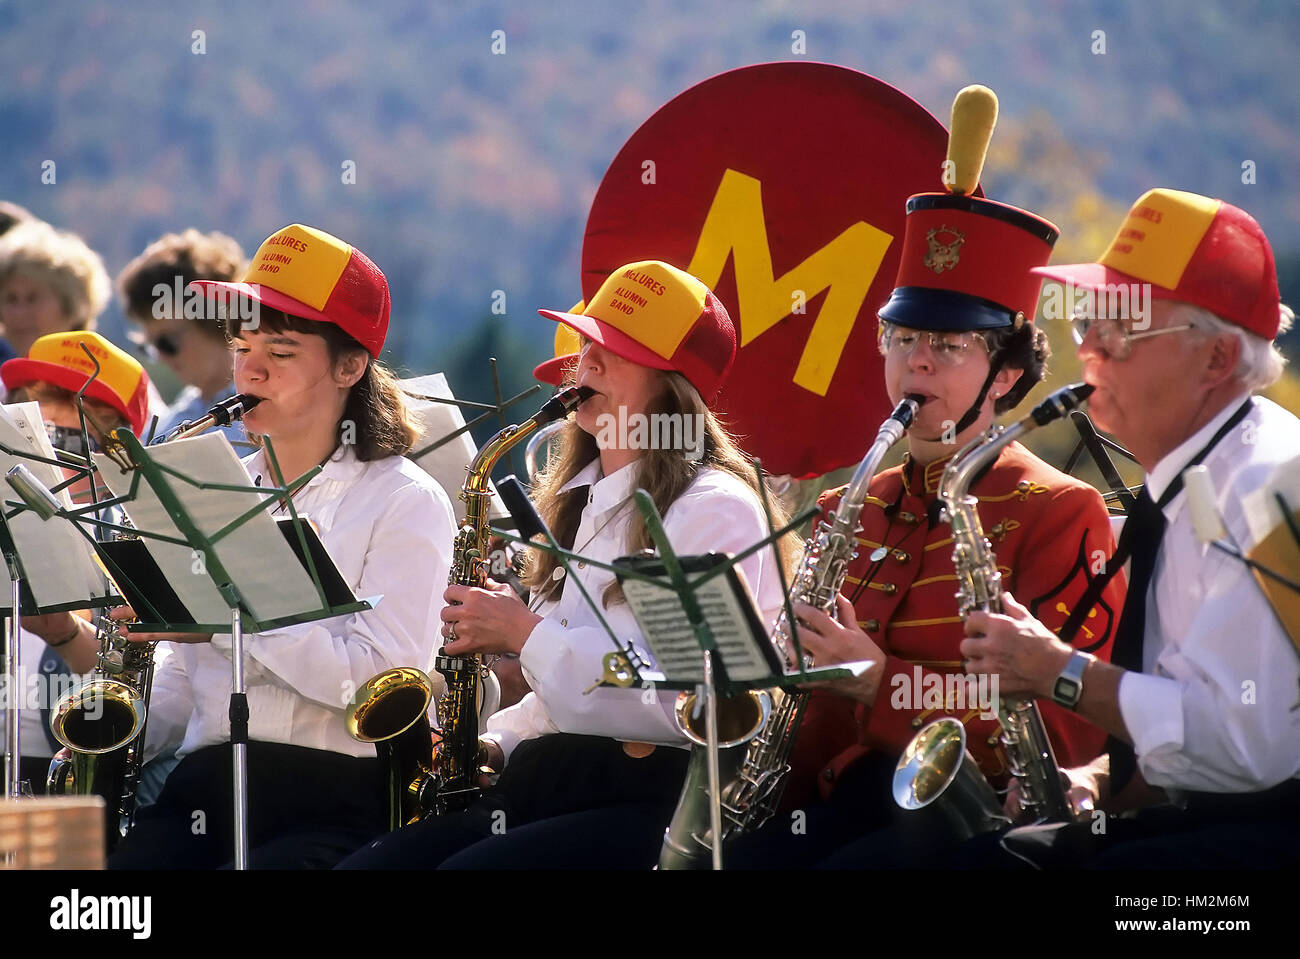 Saxophone section of McLures Alumni Band performs at the public bandstand in Groton, VT, USA. Digital scan - some - Stock Image